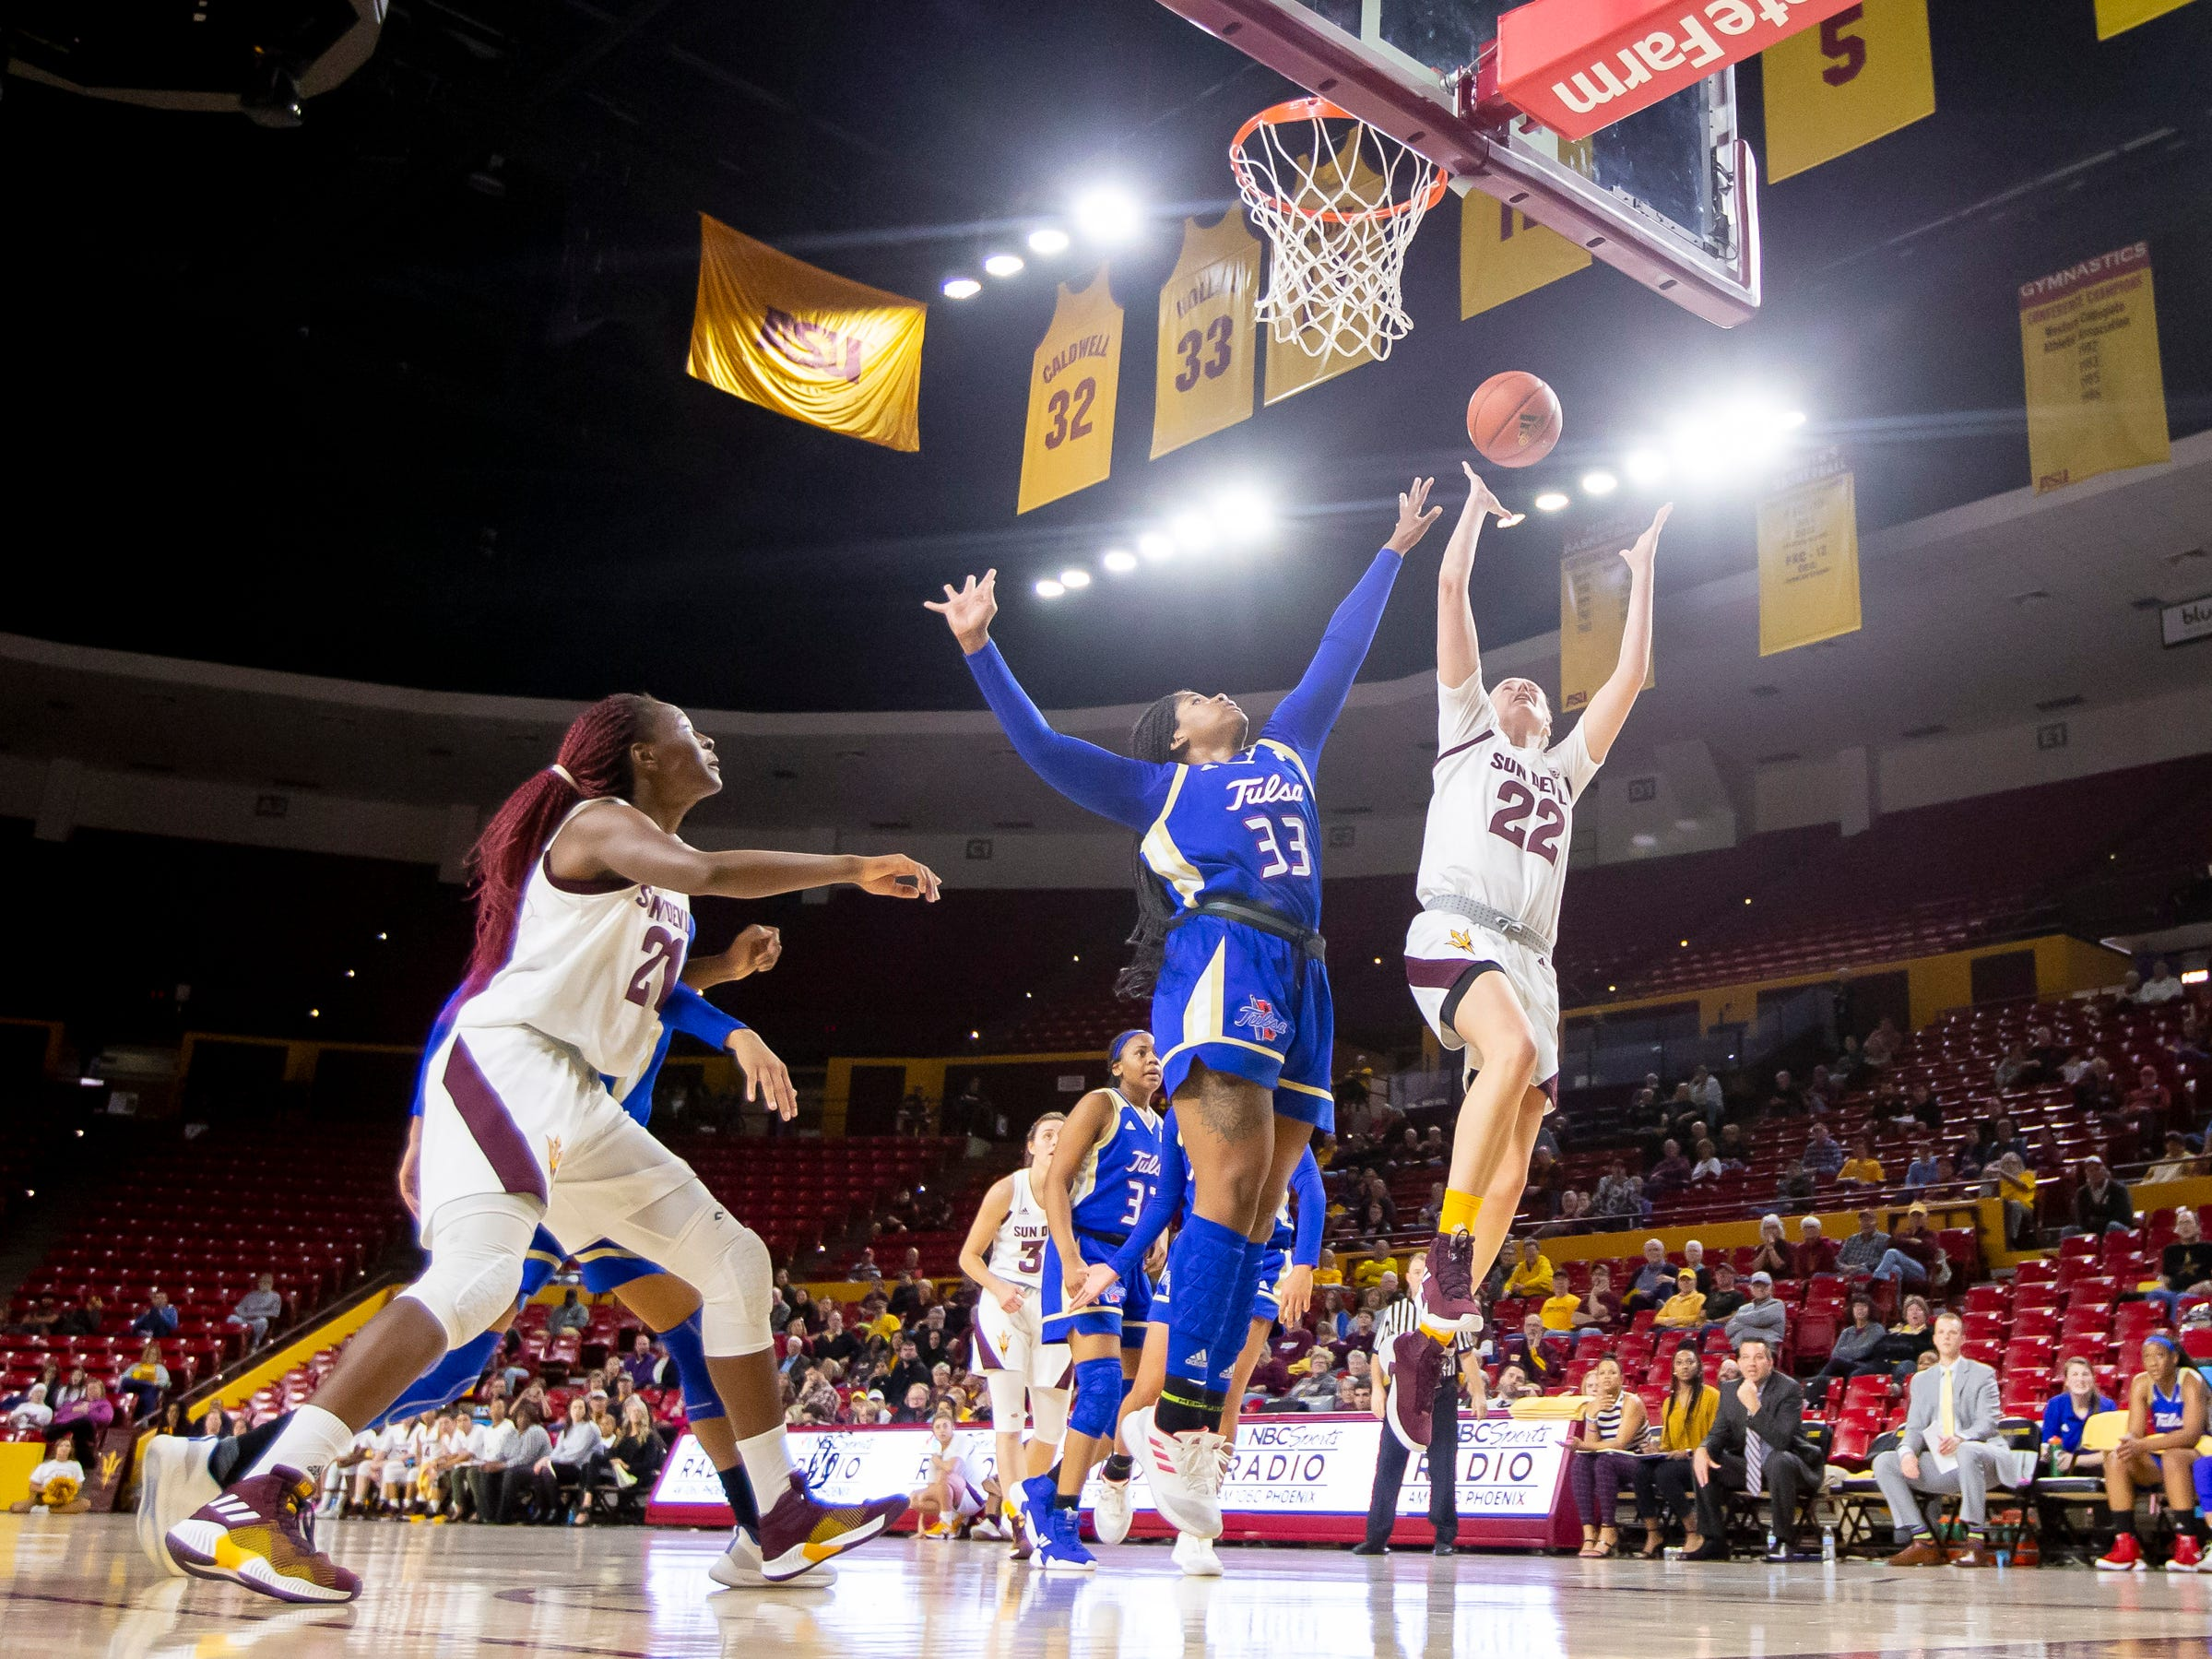 Courtney Ekmark (22) of the Arizona State Sun Devils shoots against forward Crystal Polk (33) of Tulsa Golden Hurricane at Wells Fargo Arena on Sunday, December 2, 2018 in Tempe, Arizona.